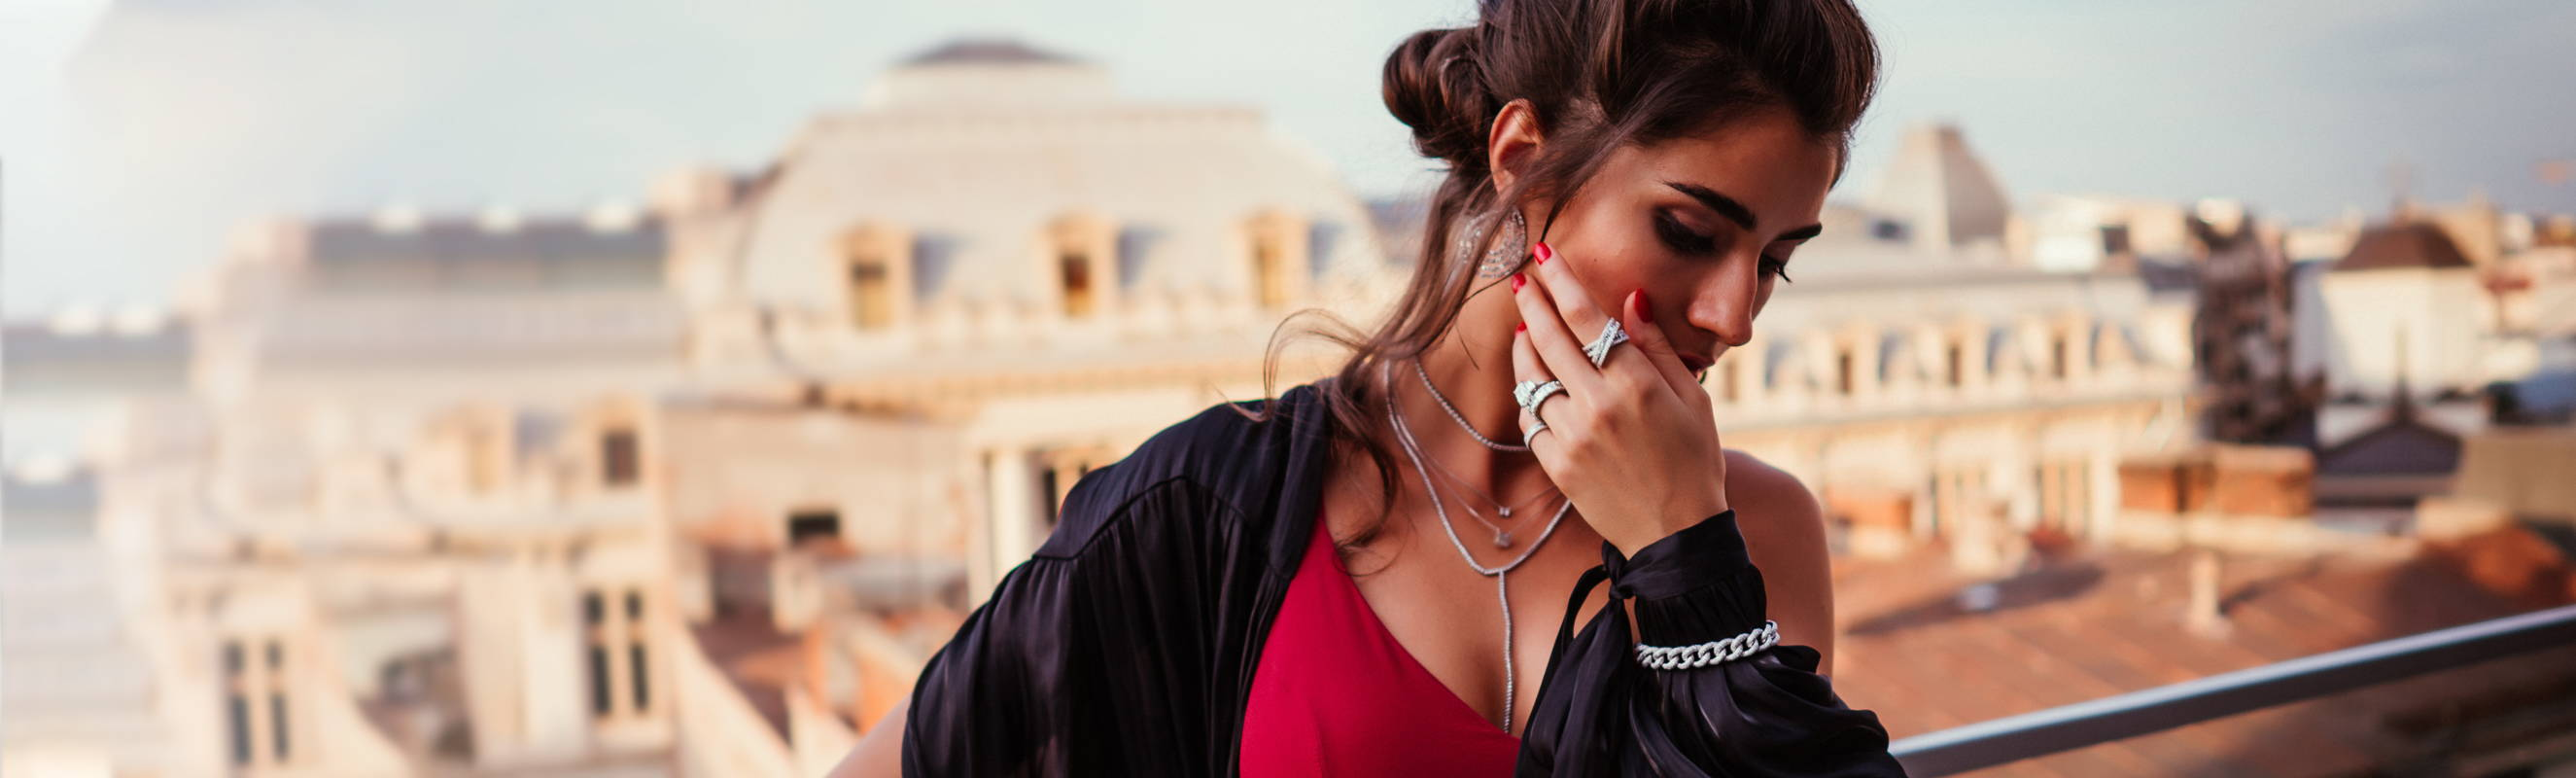 Model wearing Ring Concierge jewelry